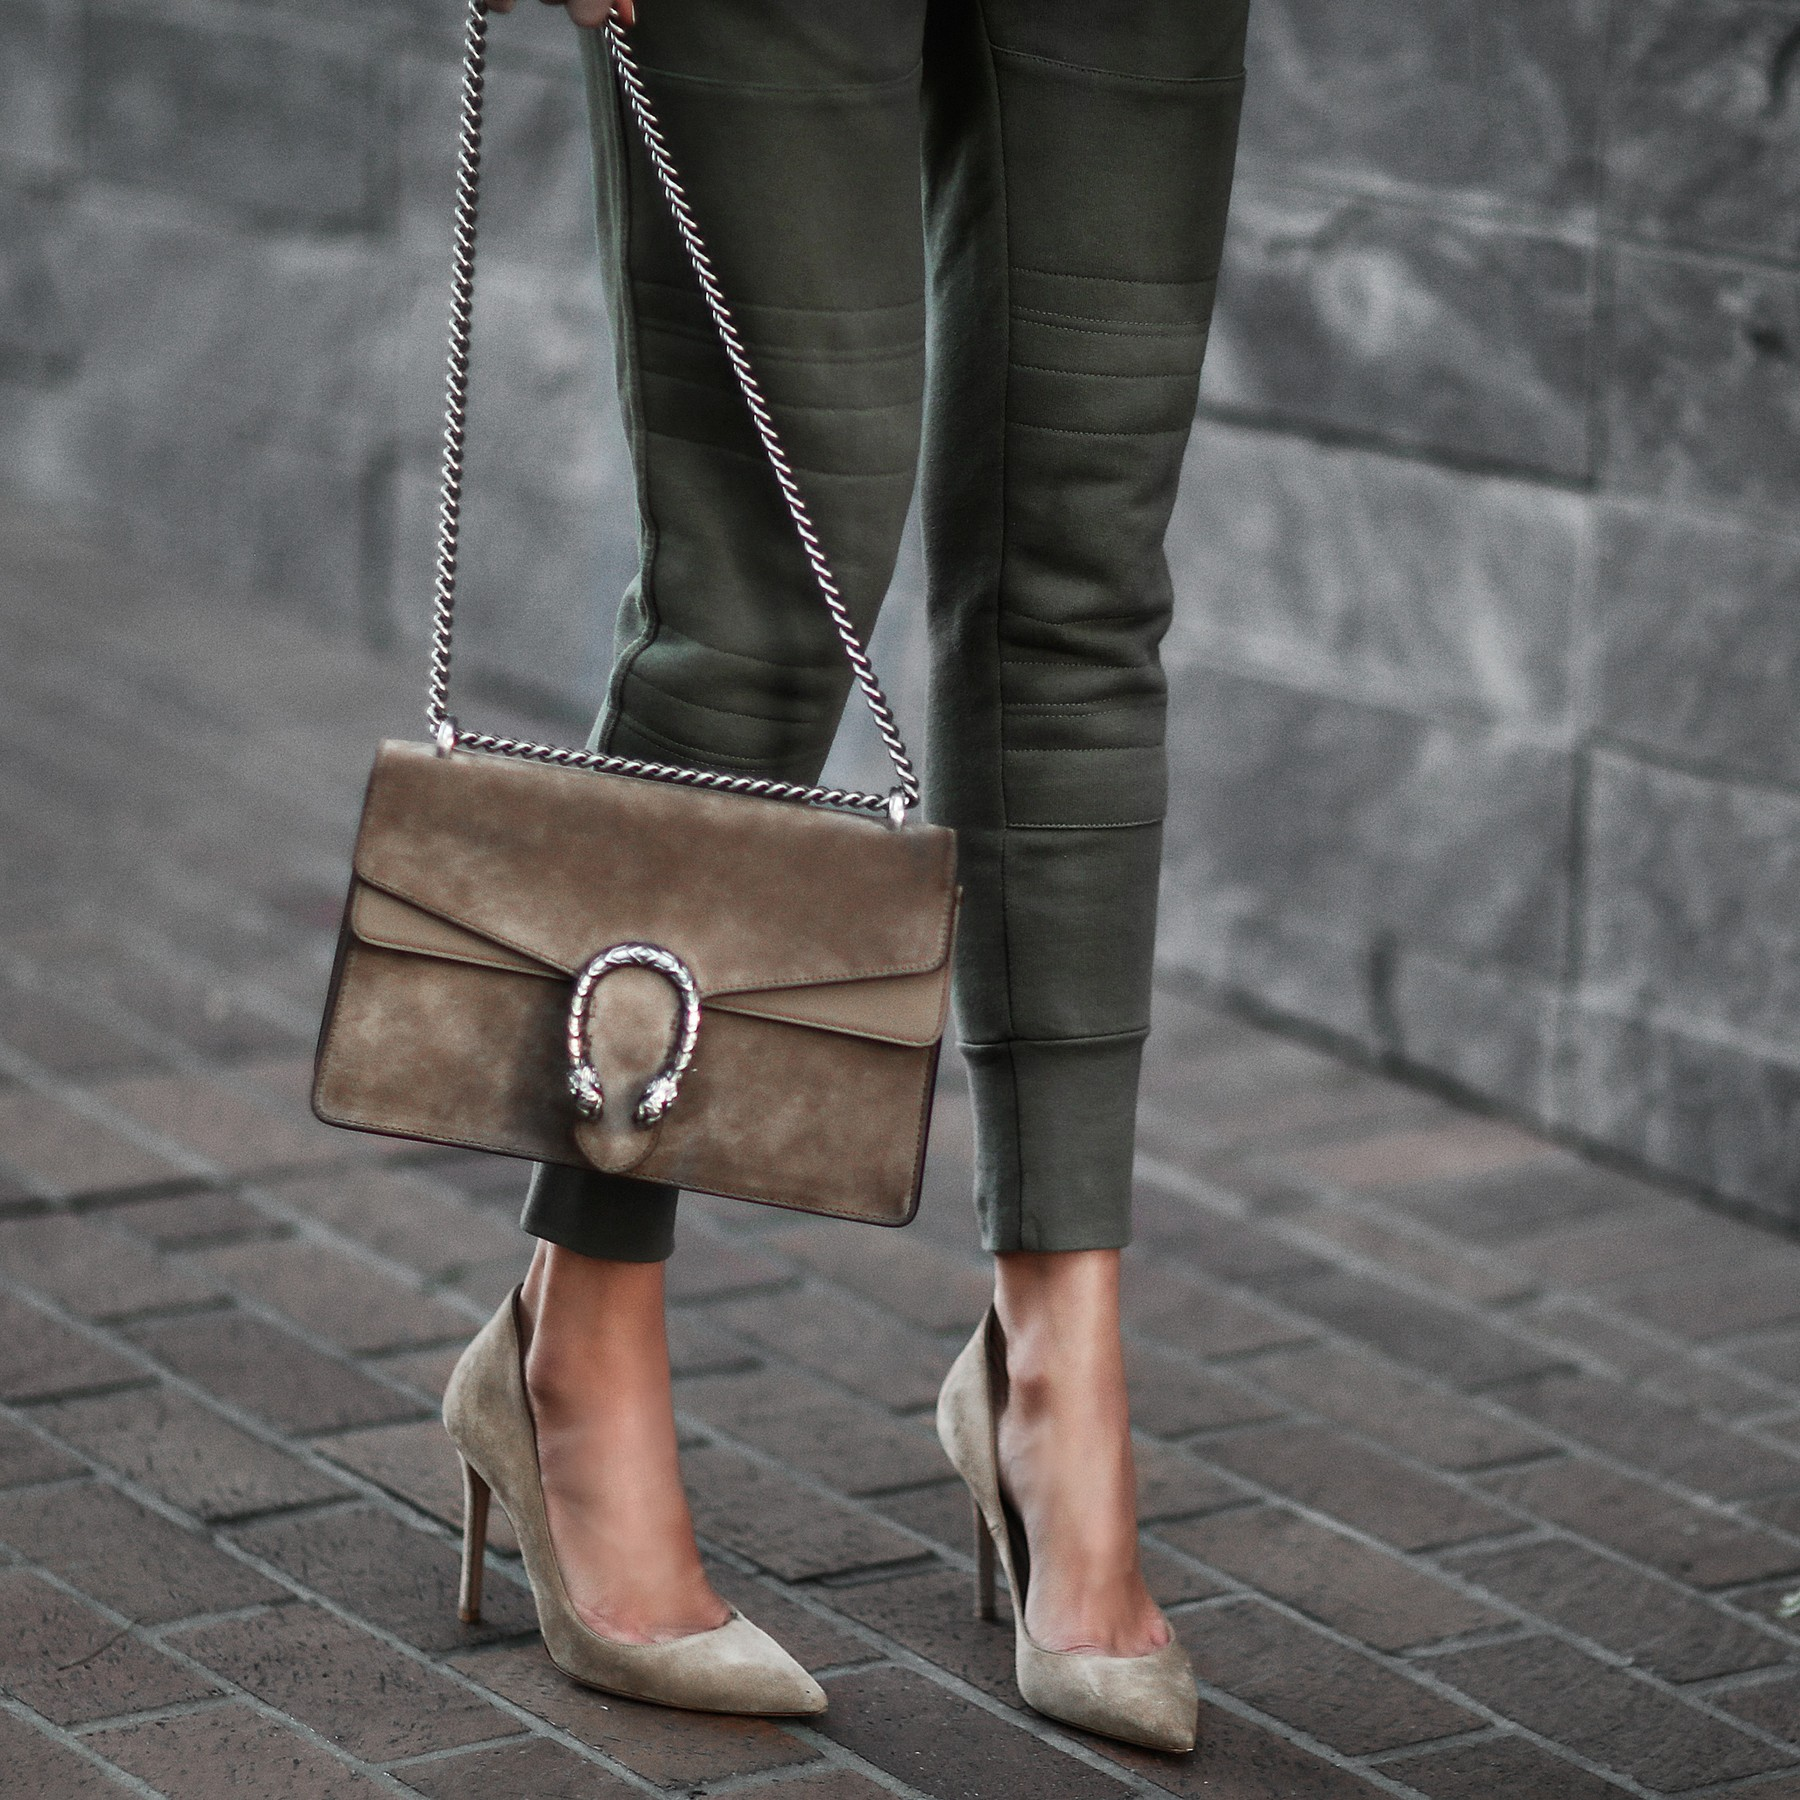 jogger pants and pumps